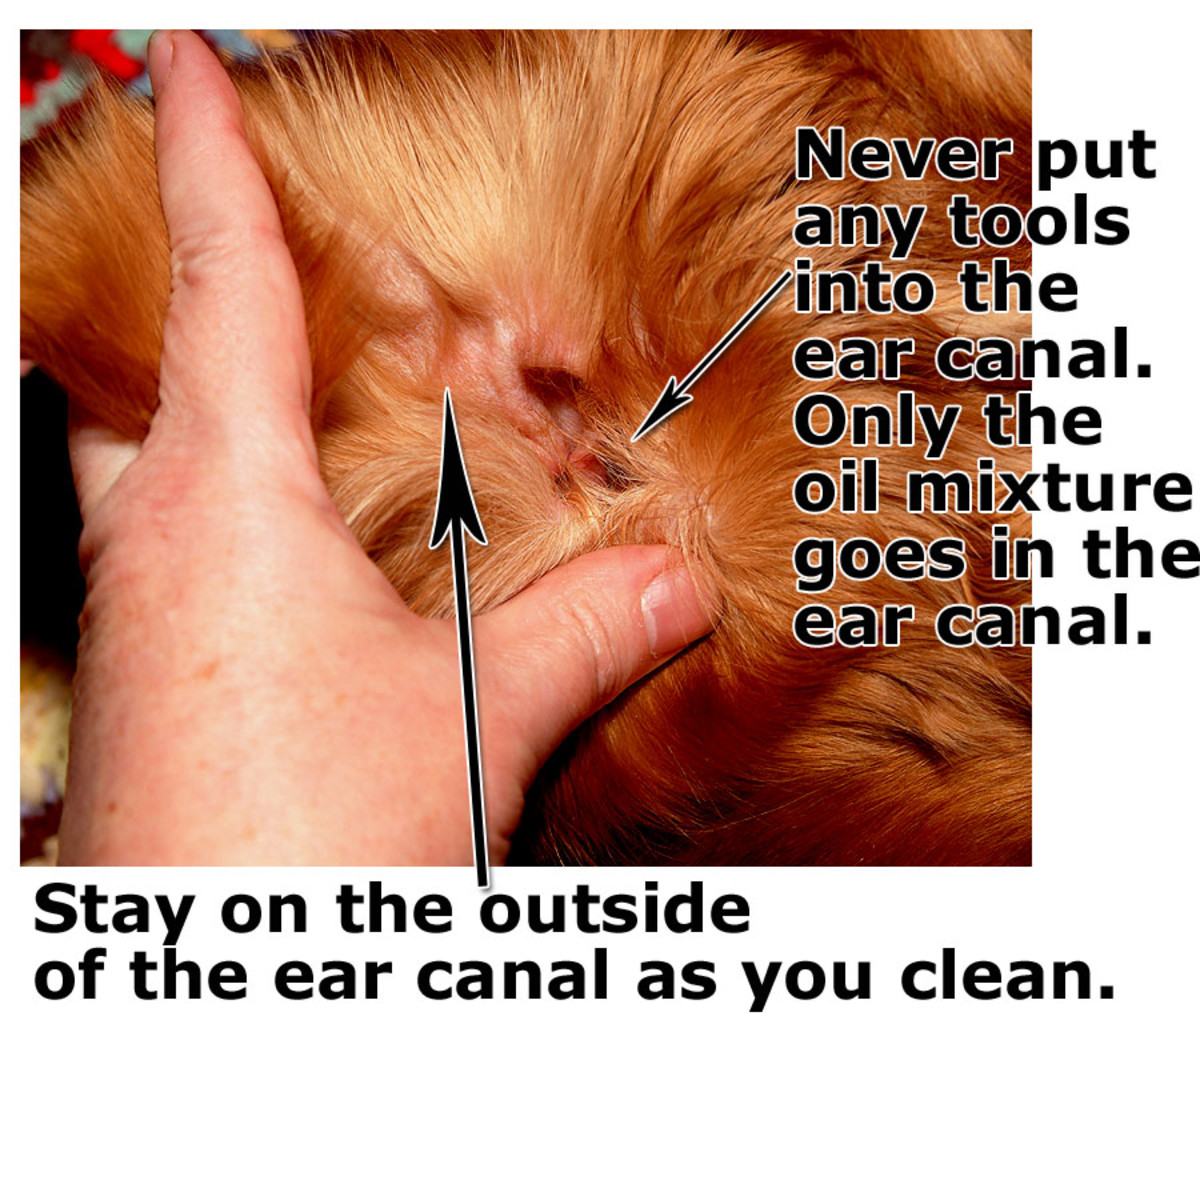 The ear canal of a dog is very sensitive, never put any tools inside the canal, only oil treatment.